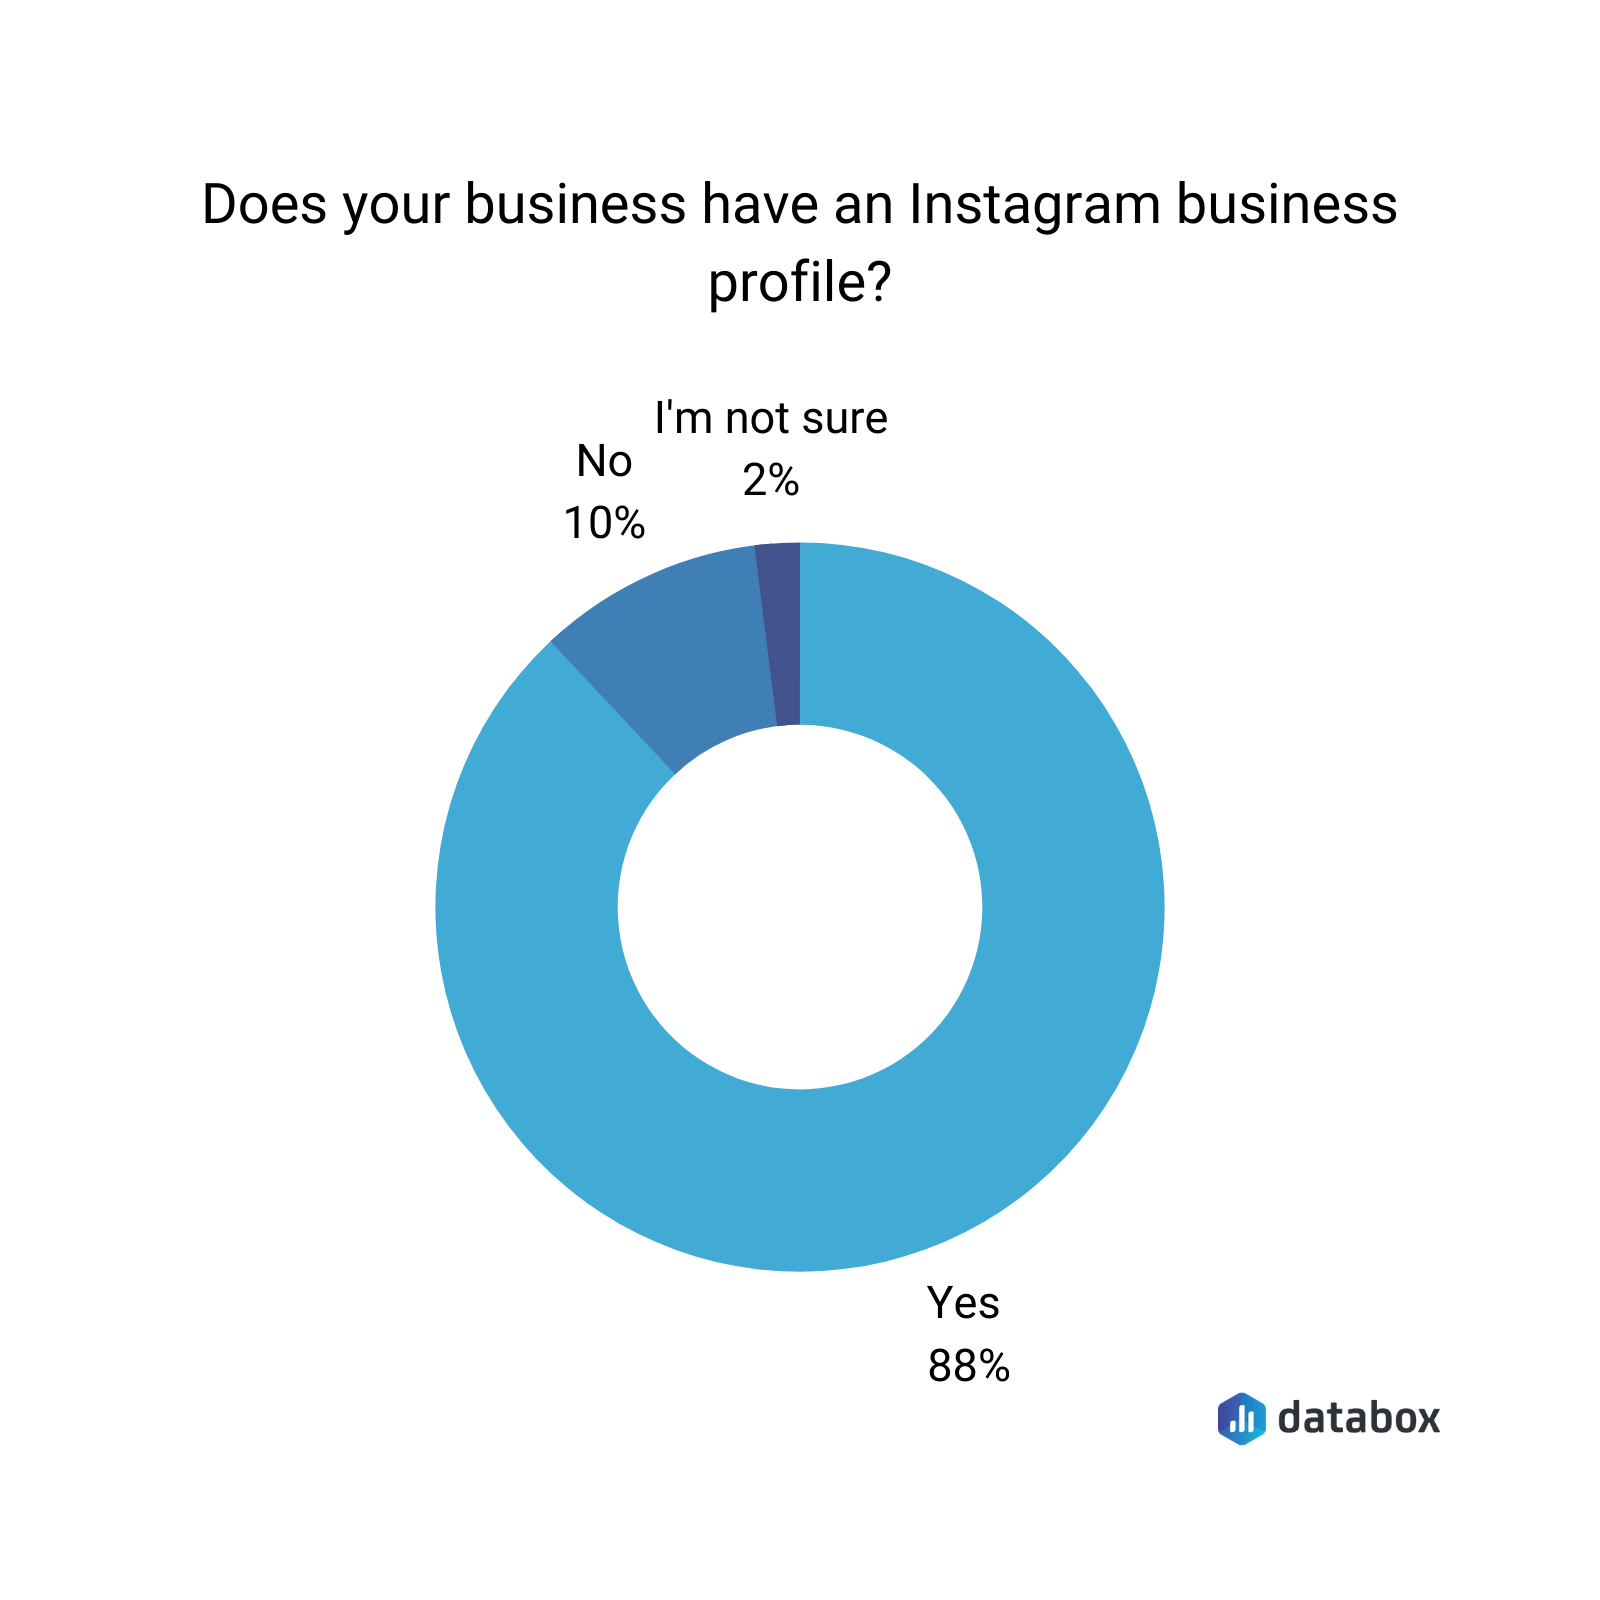 Does your business have an Instagram business profile?